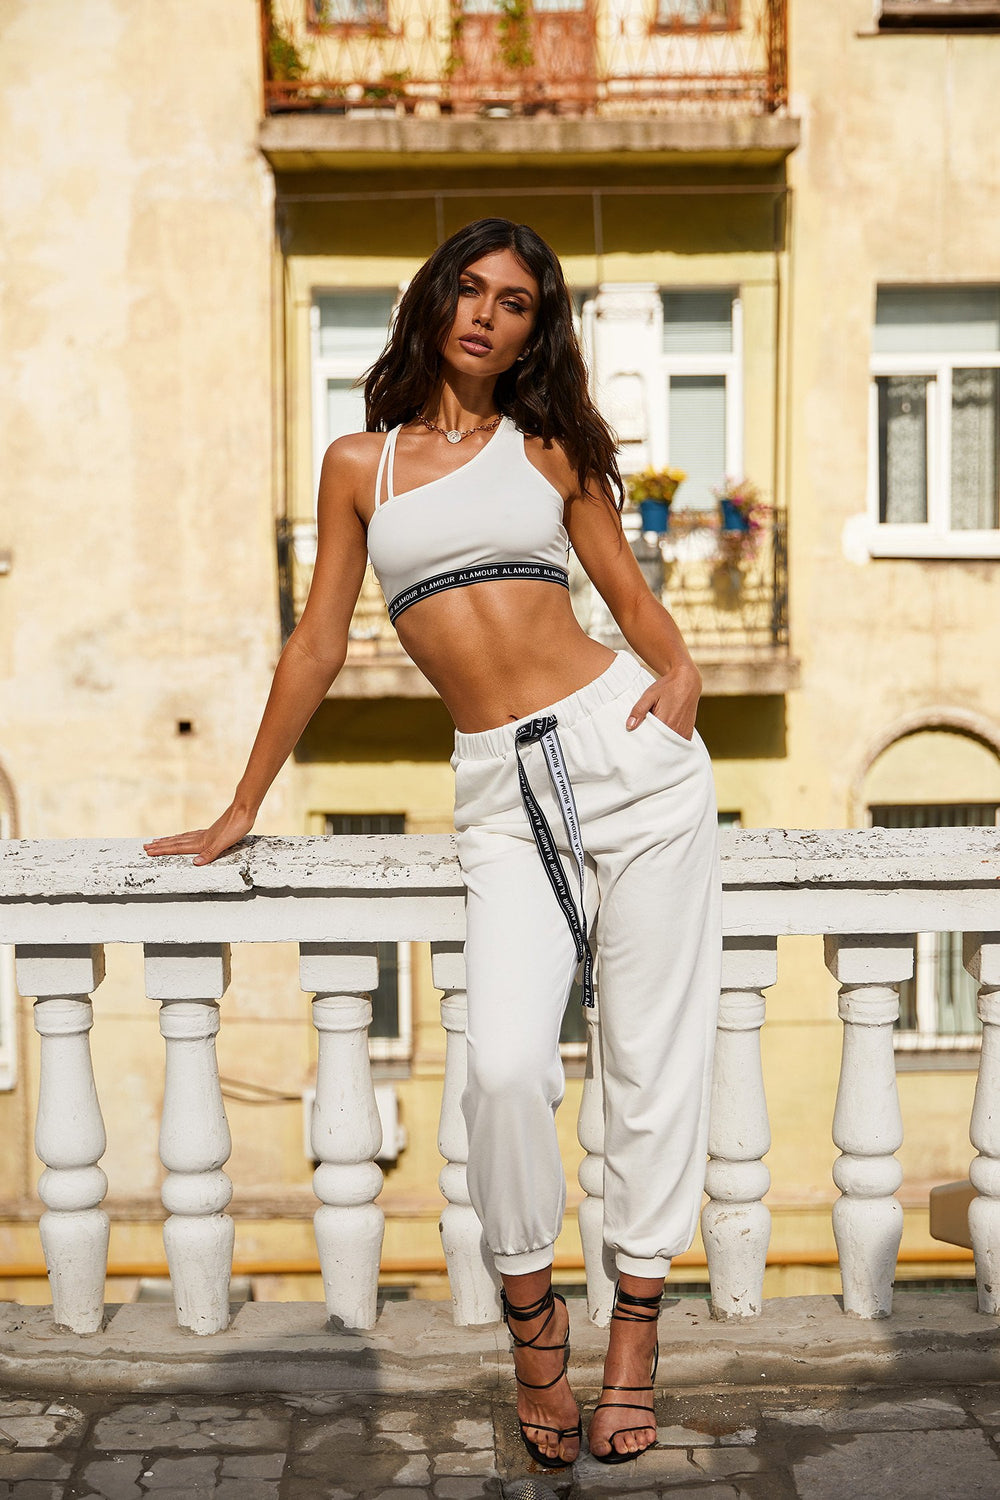 Candice Bra - White Cropped Bralette Top With Logo Graphic Detail